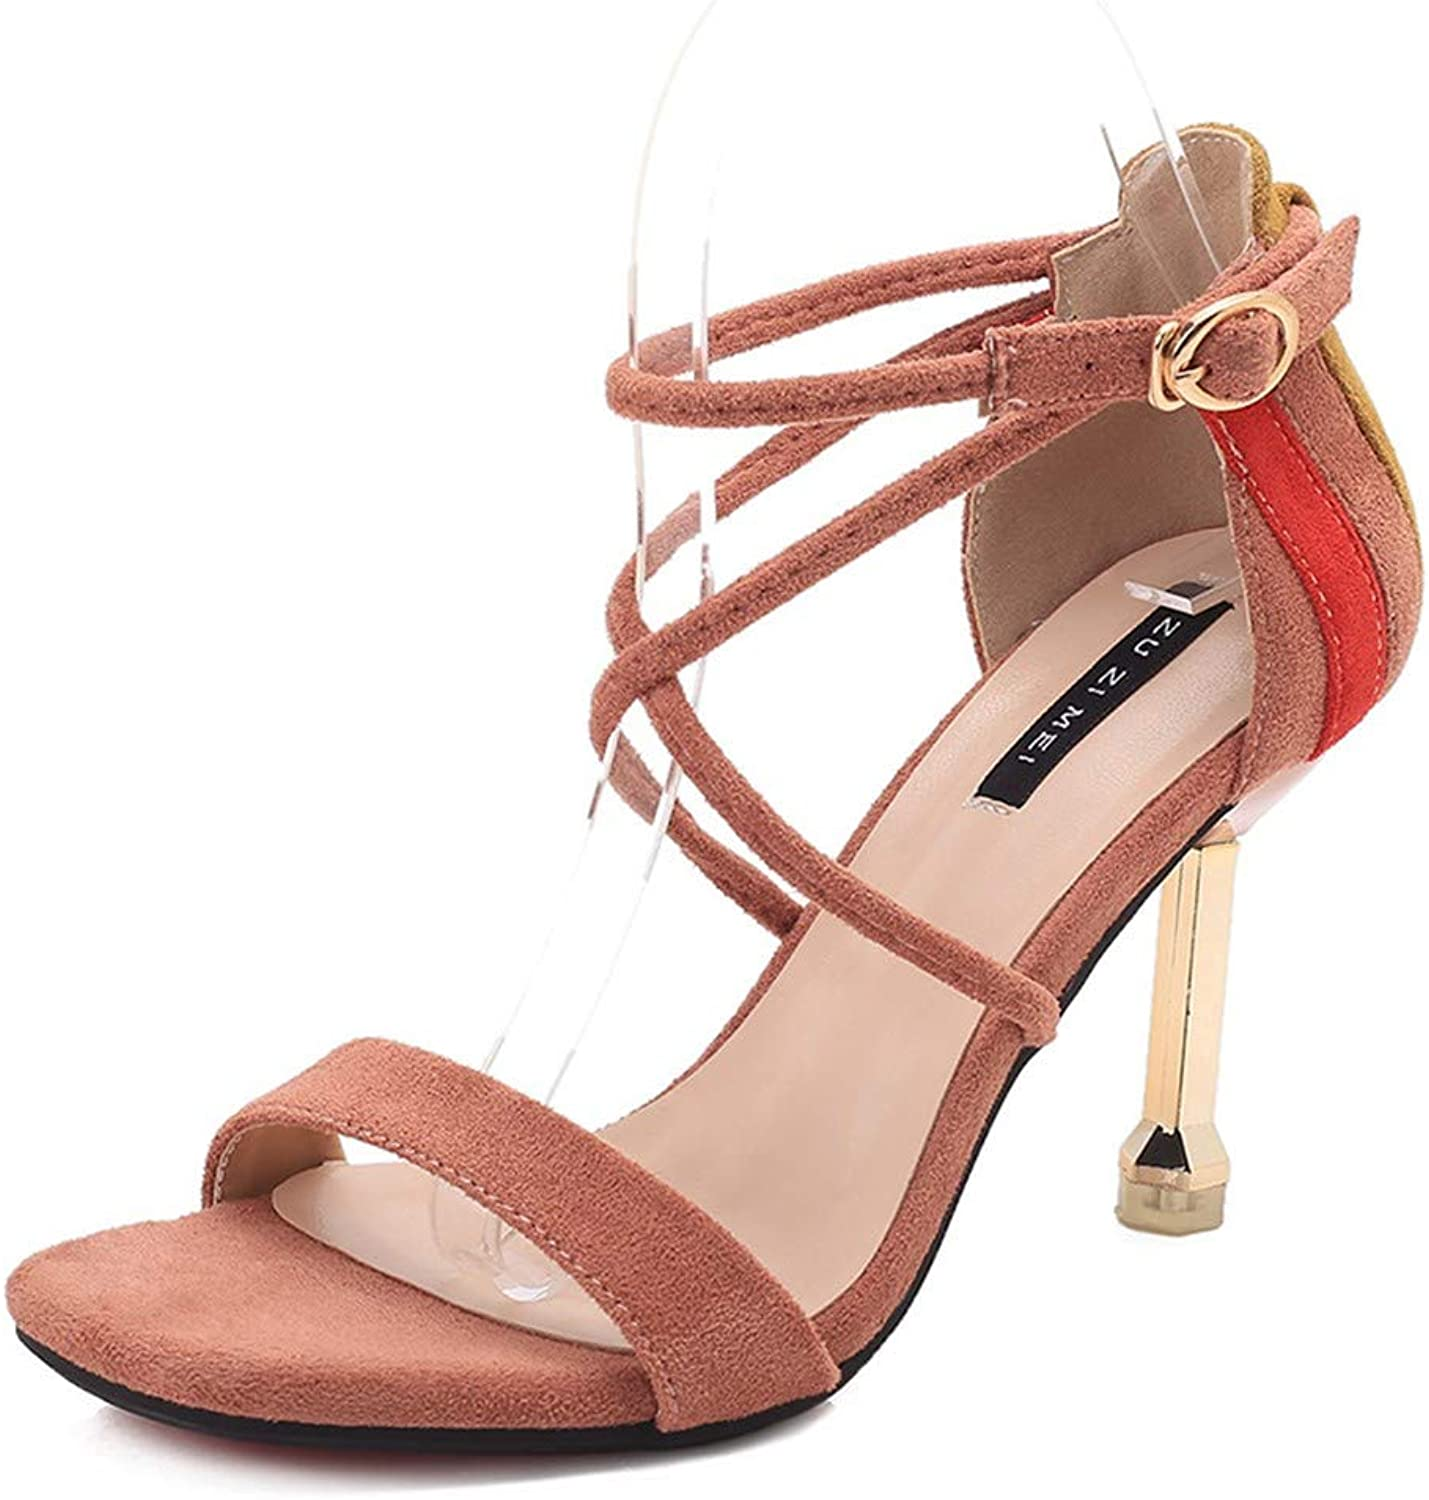 Pink Cross Buckle with Open Toe Sexy High Heel Sandals